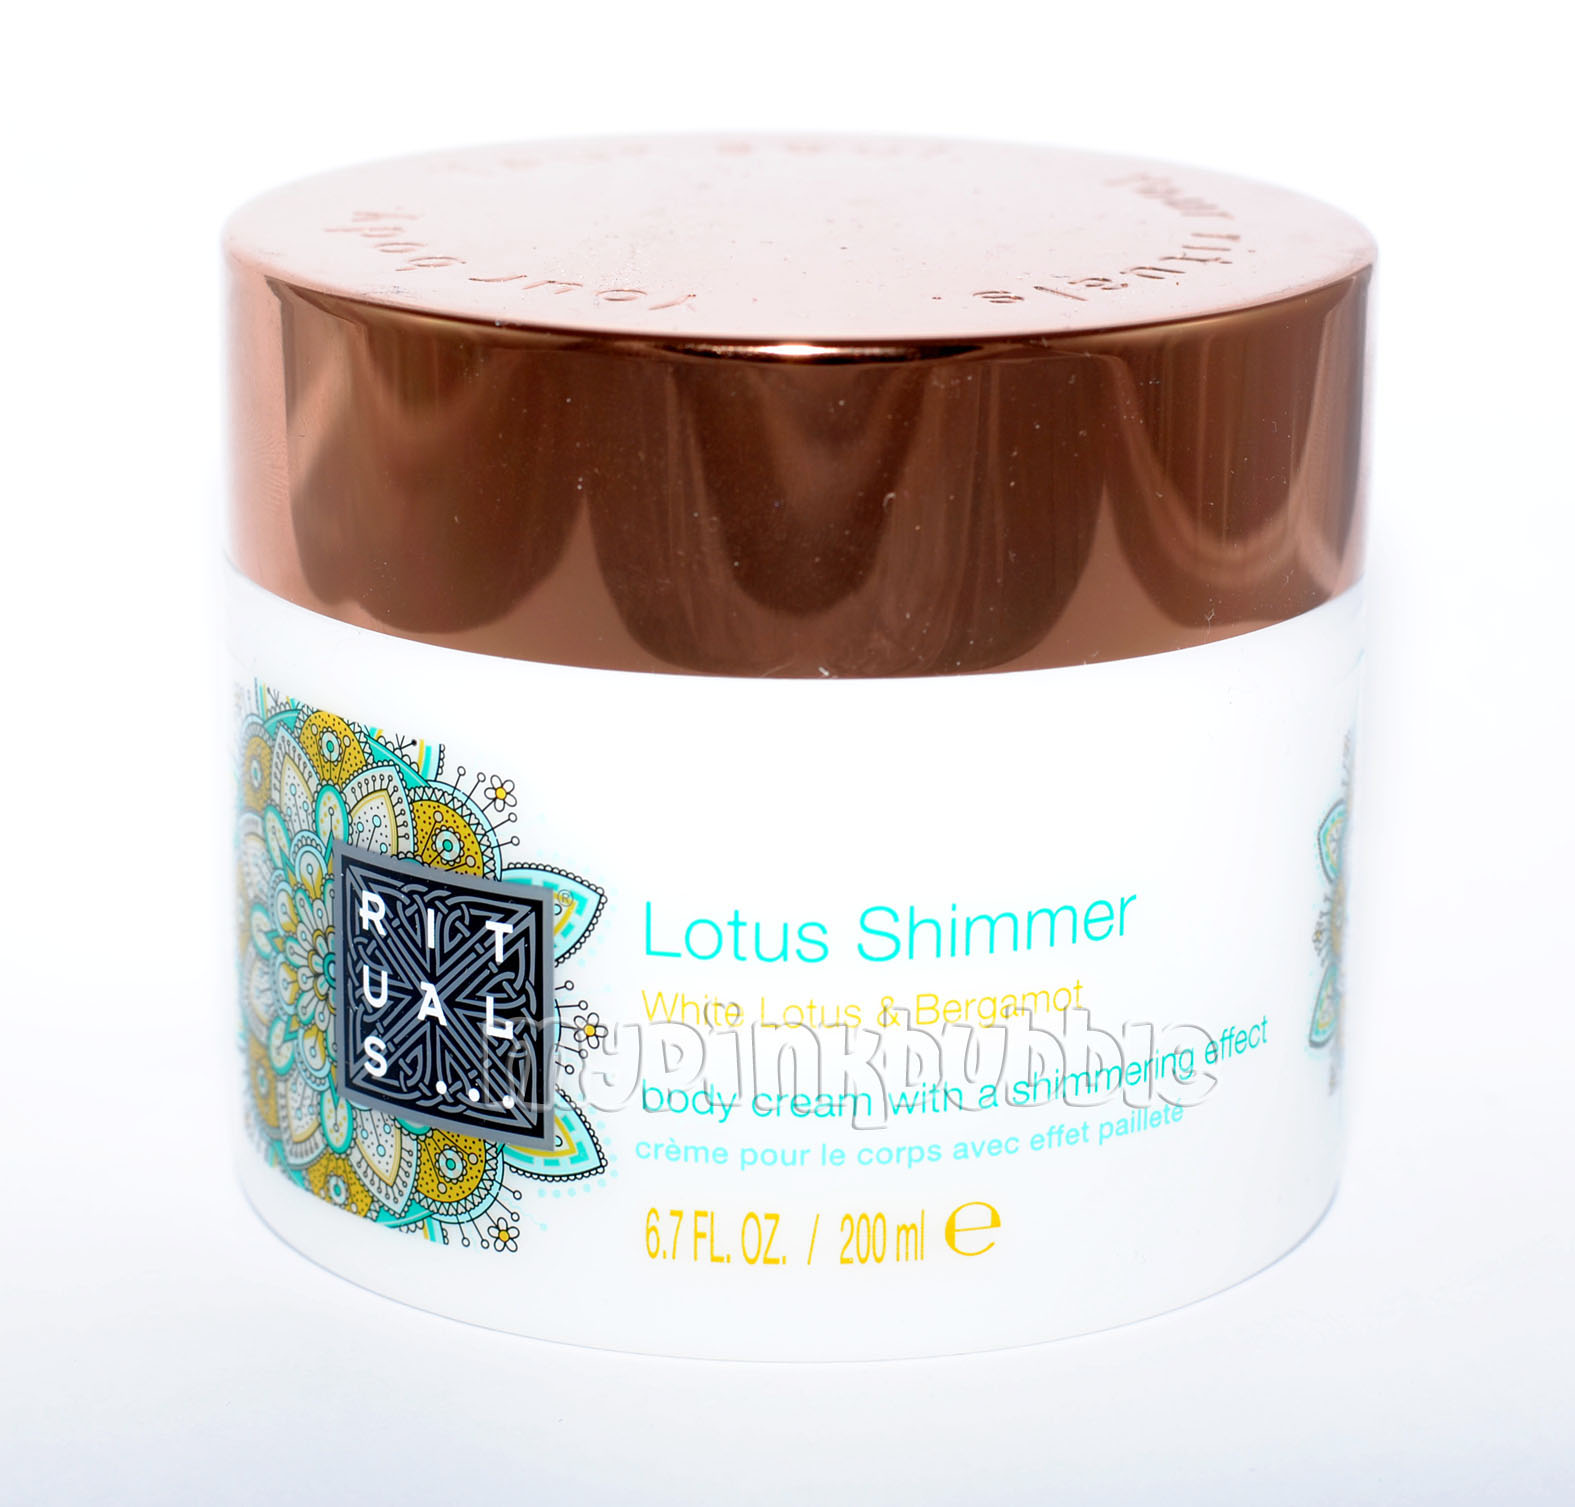 Rituals Lotus Shimmer Body Cream Shimmering Effect